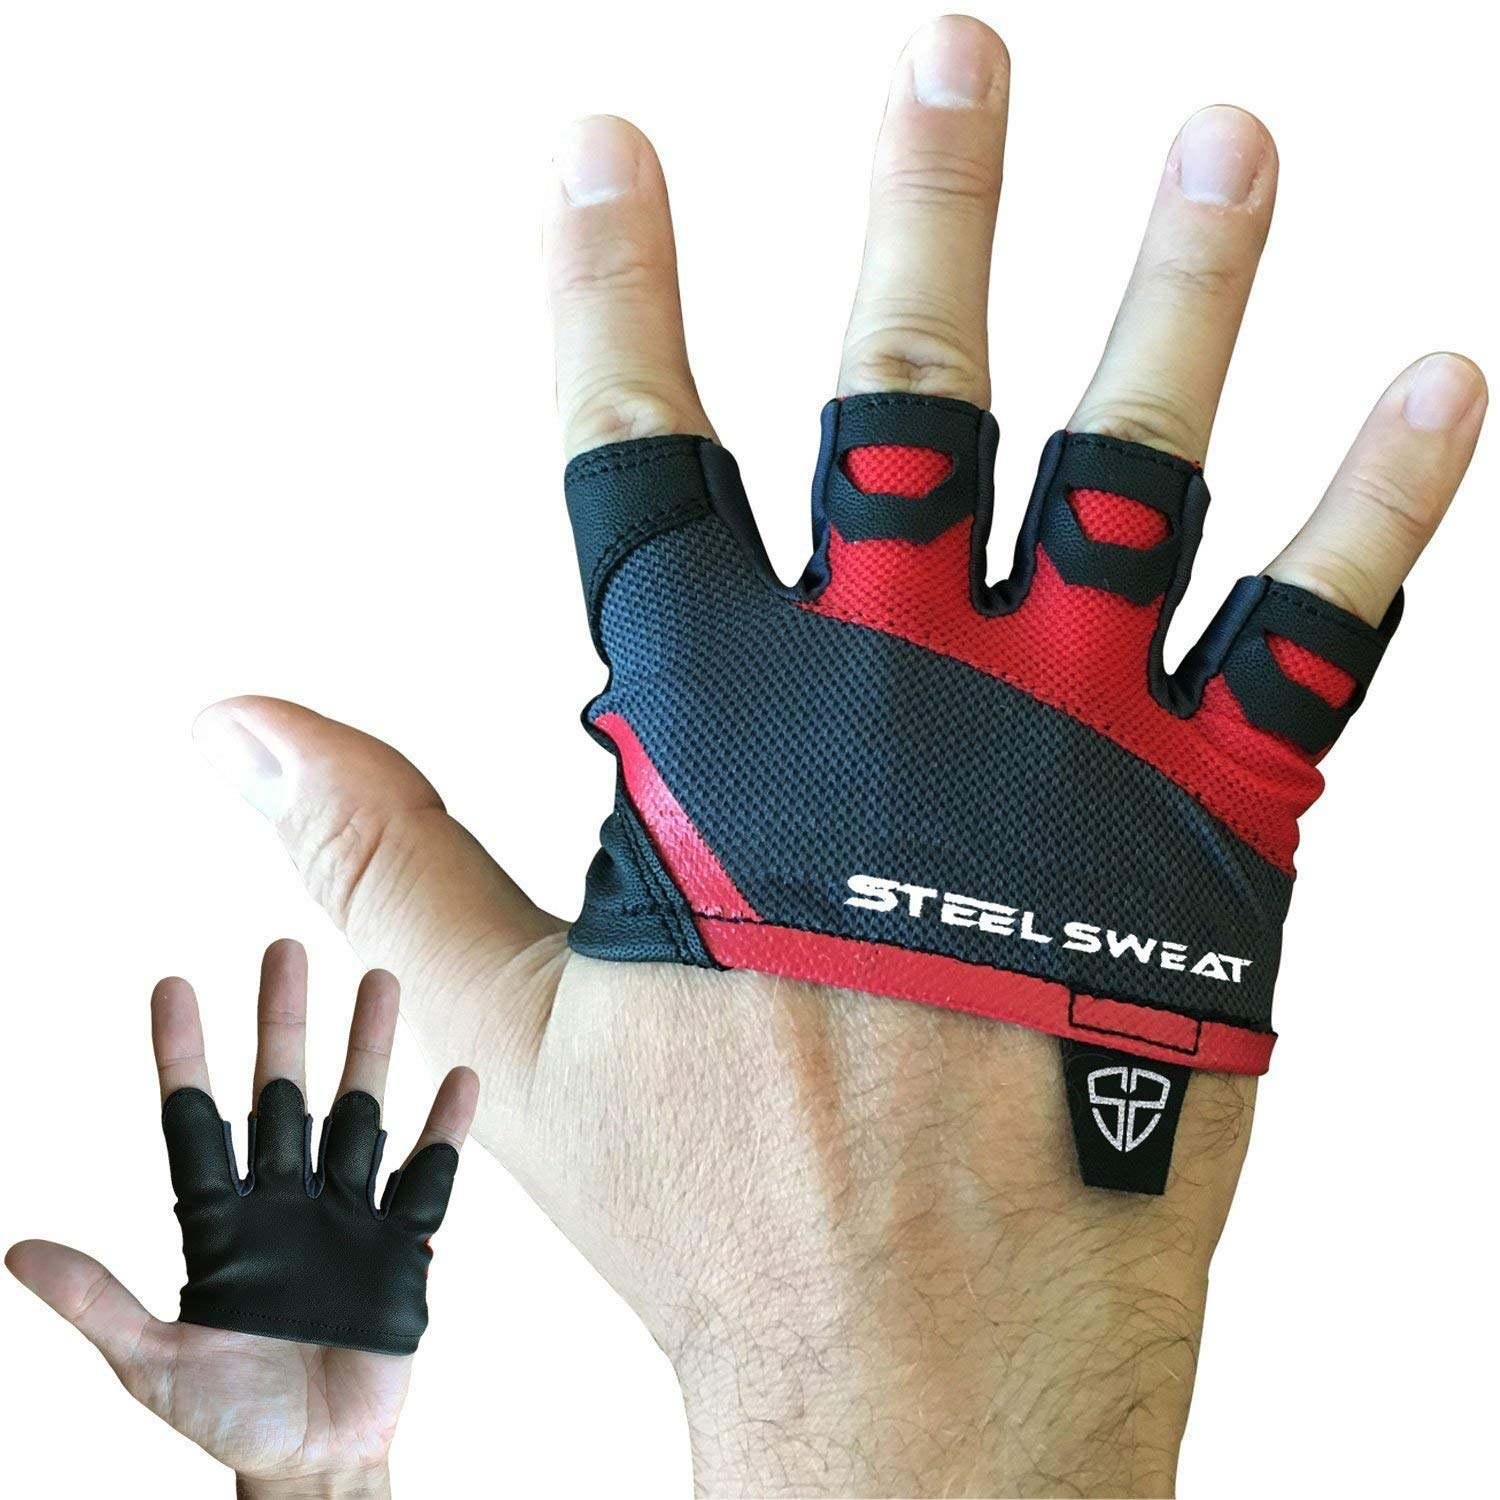 Crossfit WOD Workout Weight Lifting Gloves to Protect Your Palms for Men /& Women SKINS Steel Sweat Gym Gloves